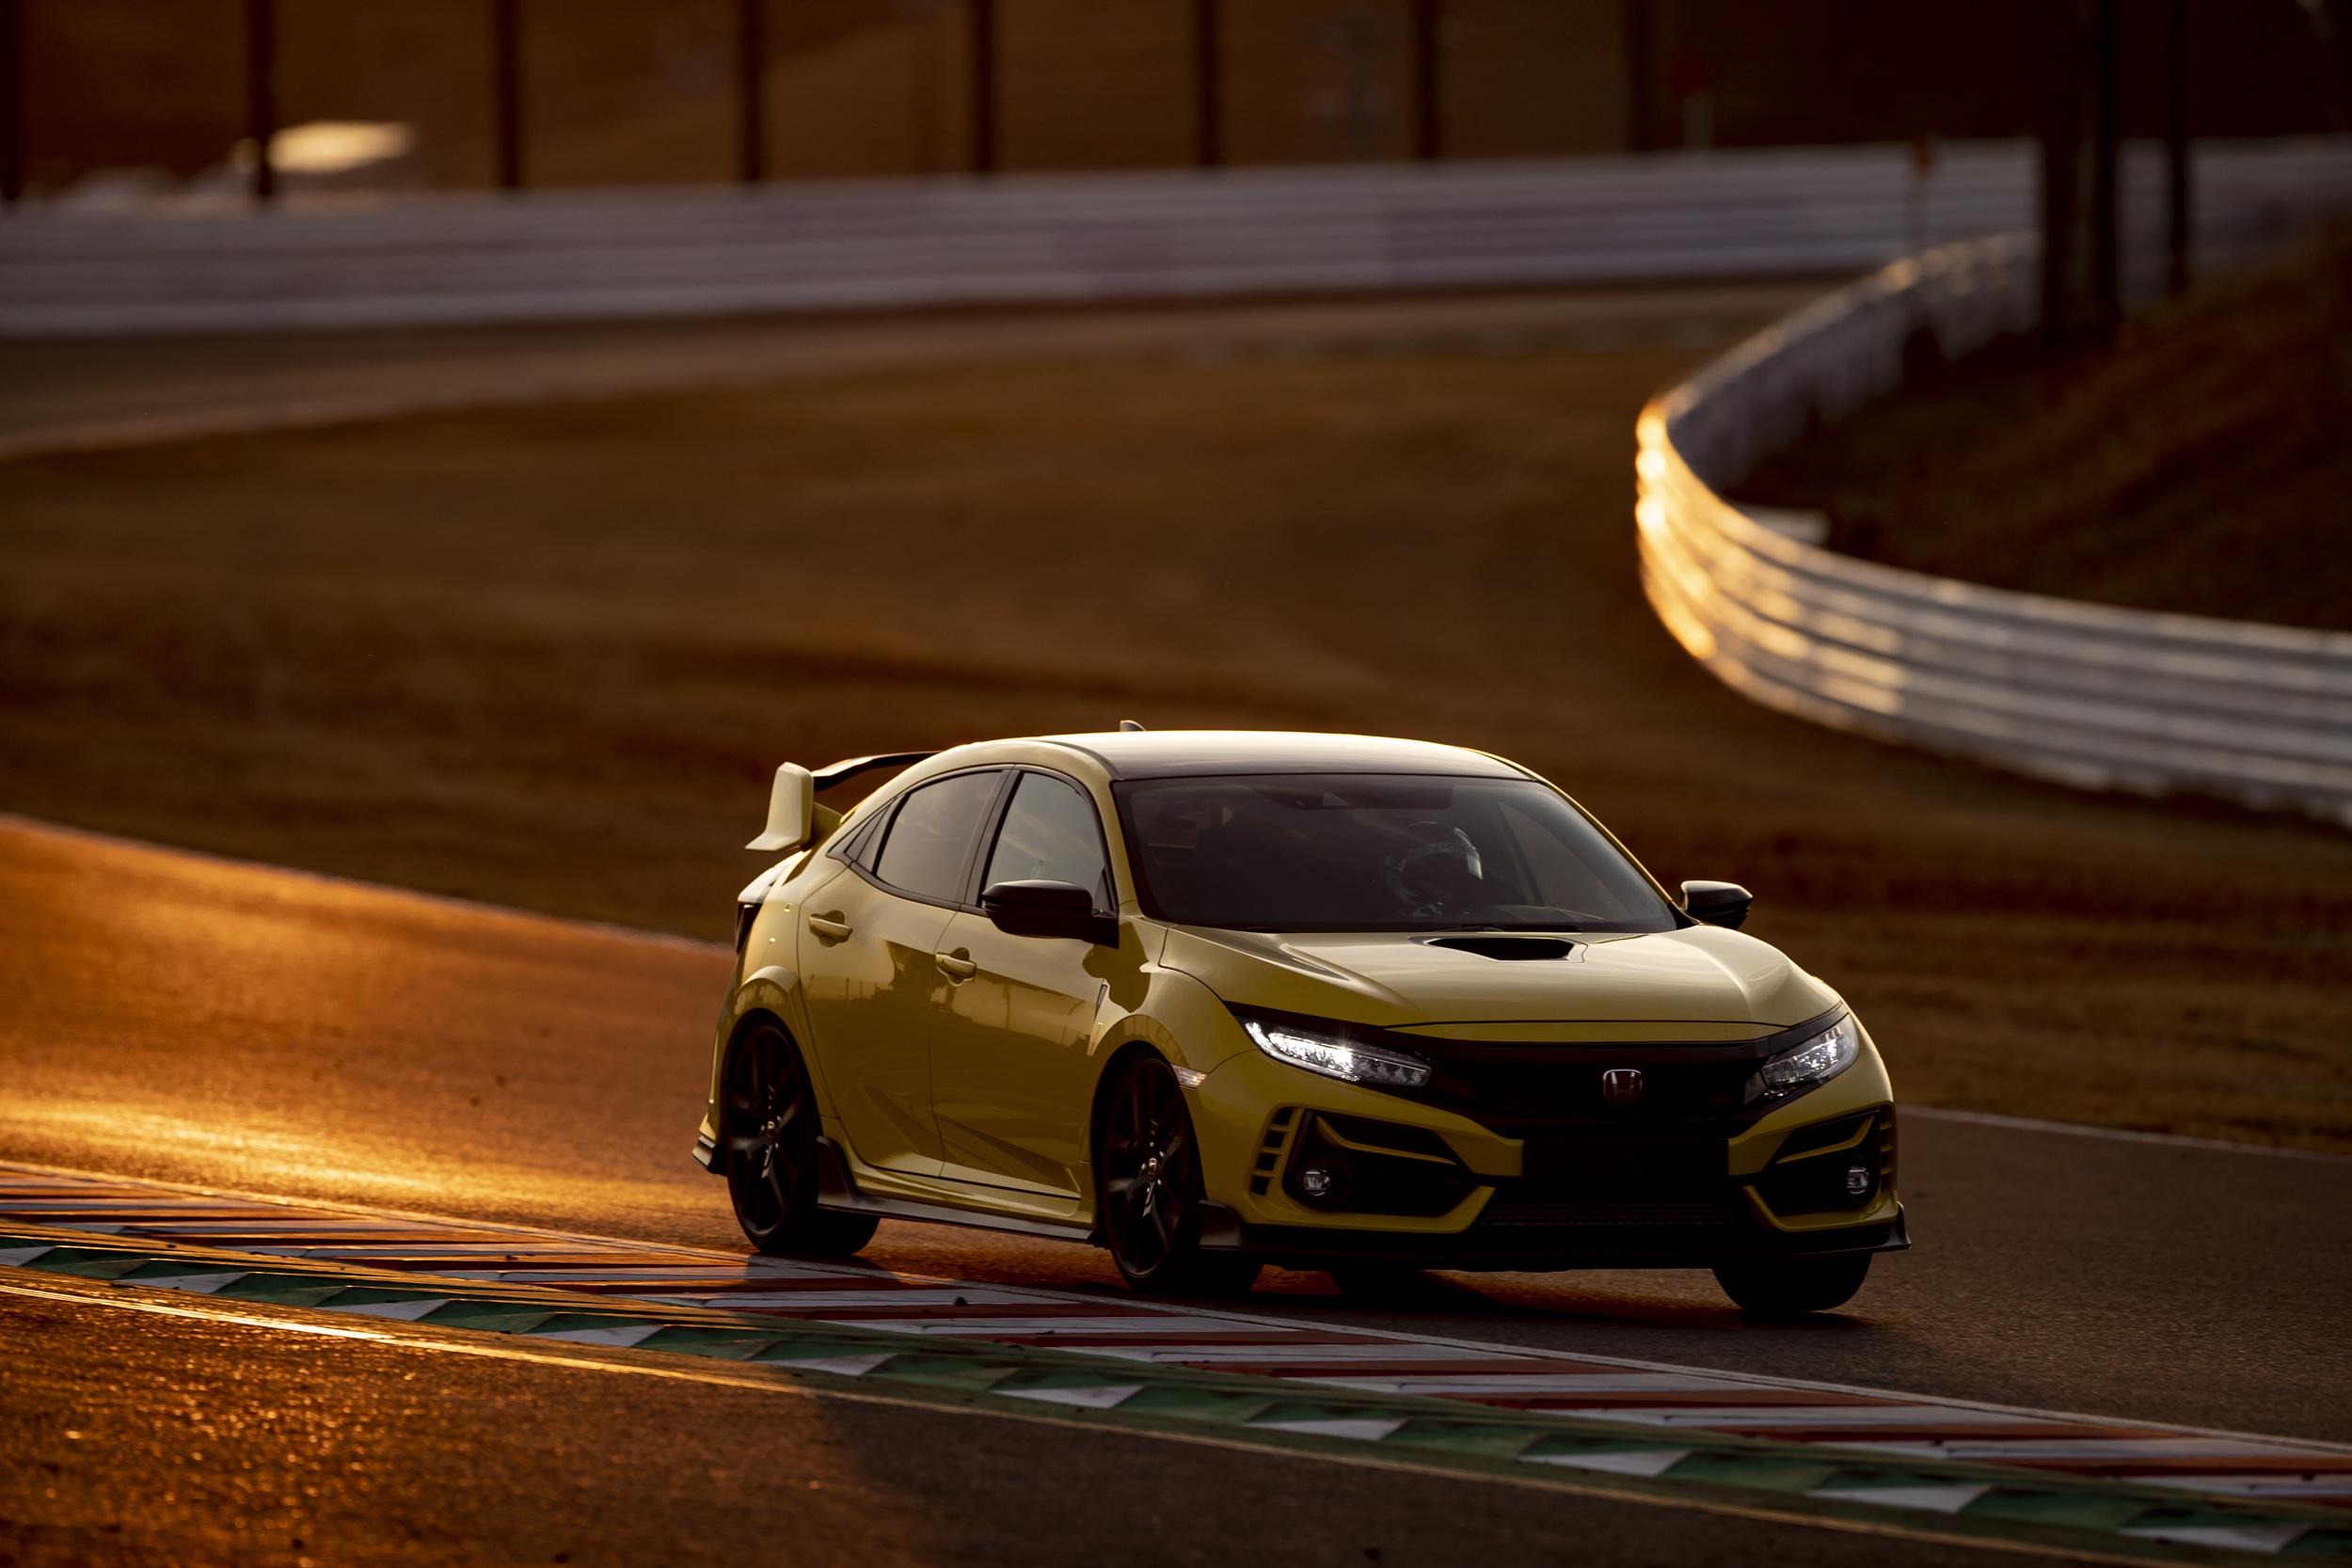 hondacivictyper2021limited-cafeautovn-6